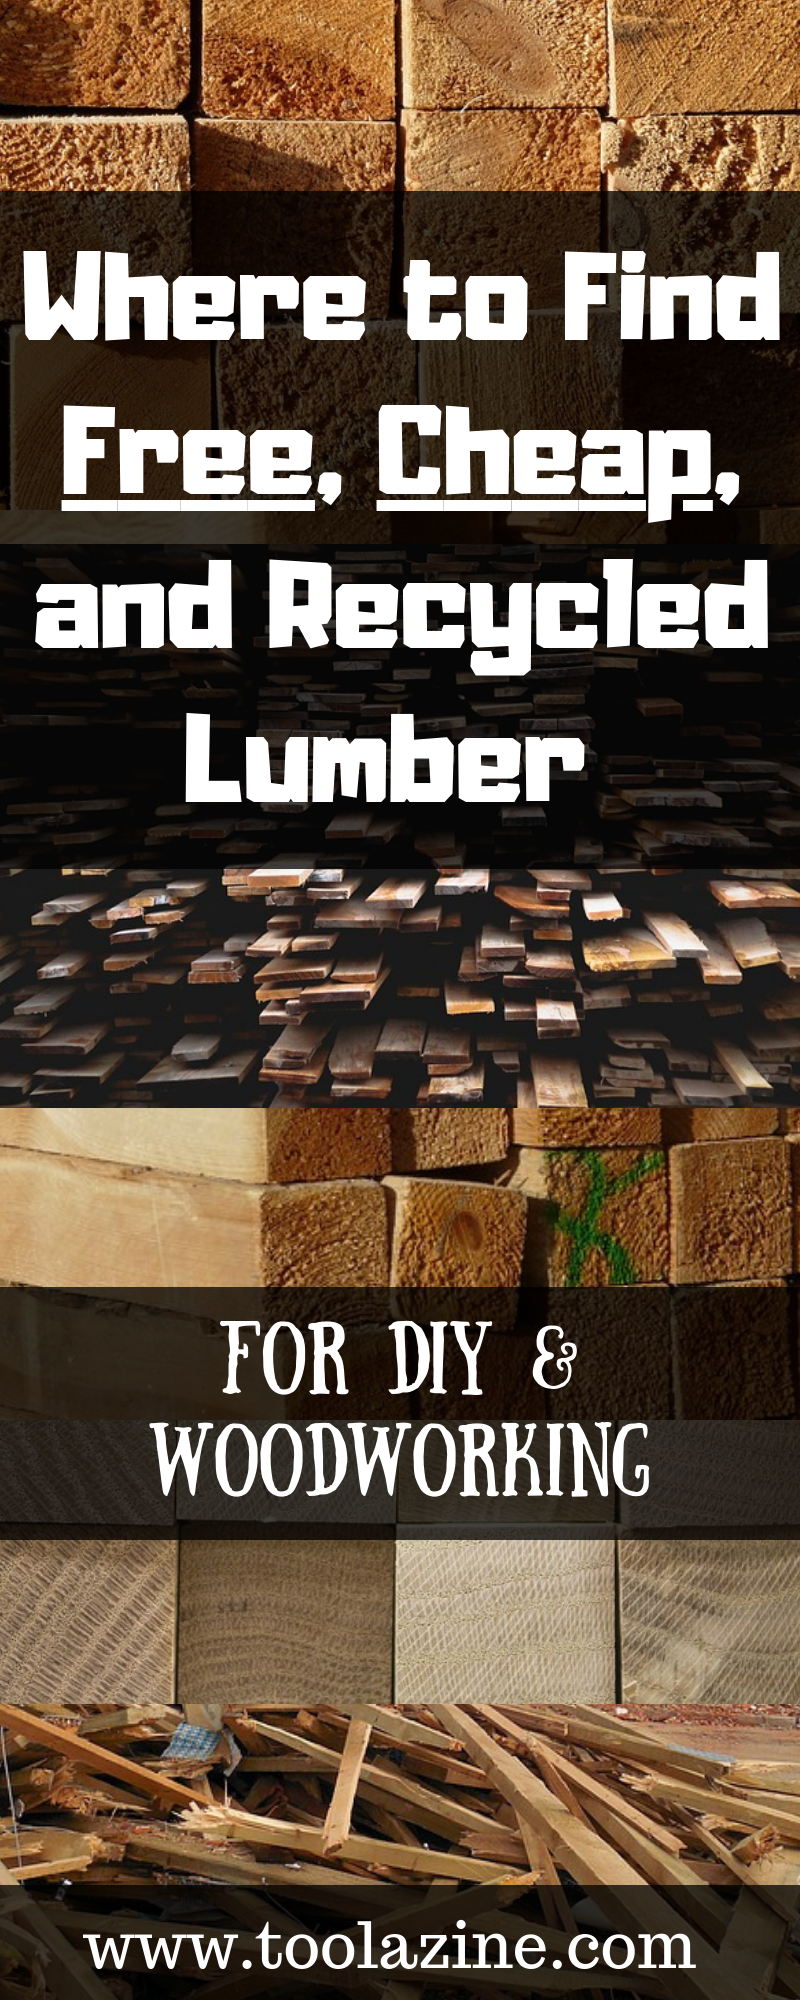 Where to Find Free, Cheap, and Recycled Lumber for DIY & Woodworking. Including some great easy options. #woodworkingtips